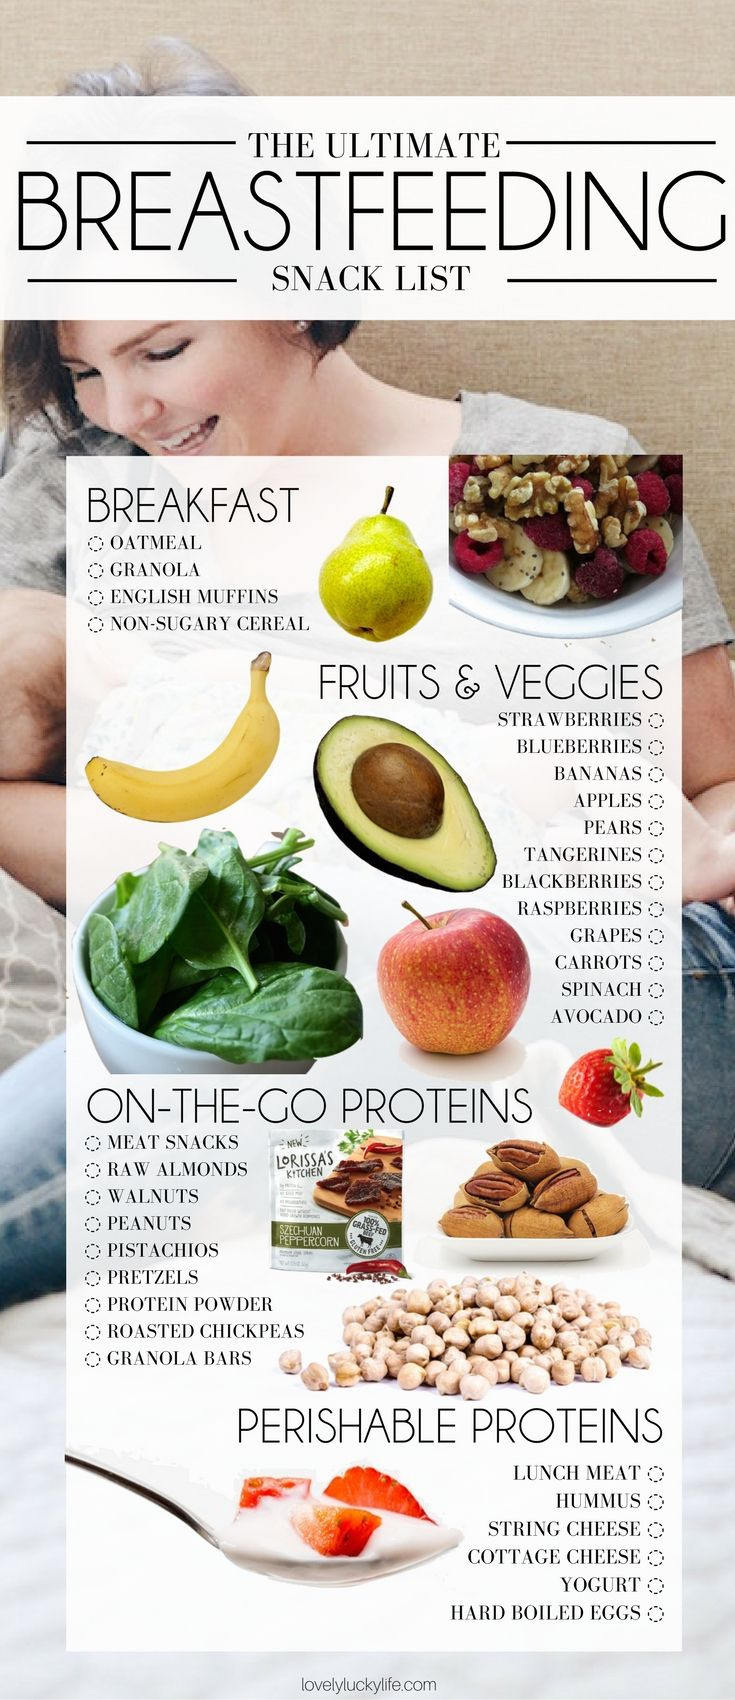 Healthy Snacks For Breastfeeding Moms  The Best Snacks for Breastfeeding